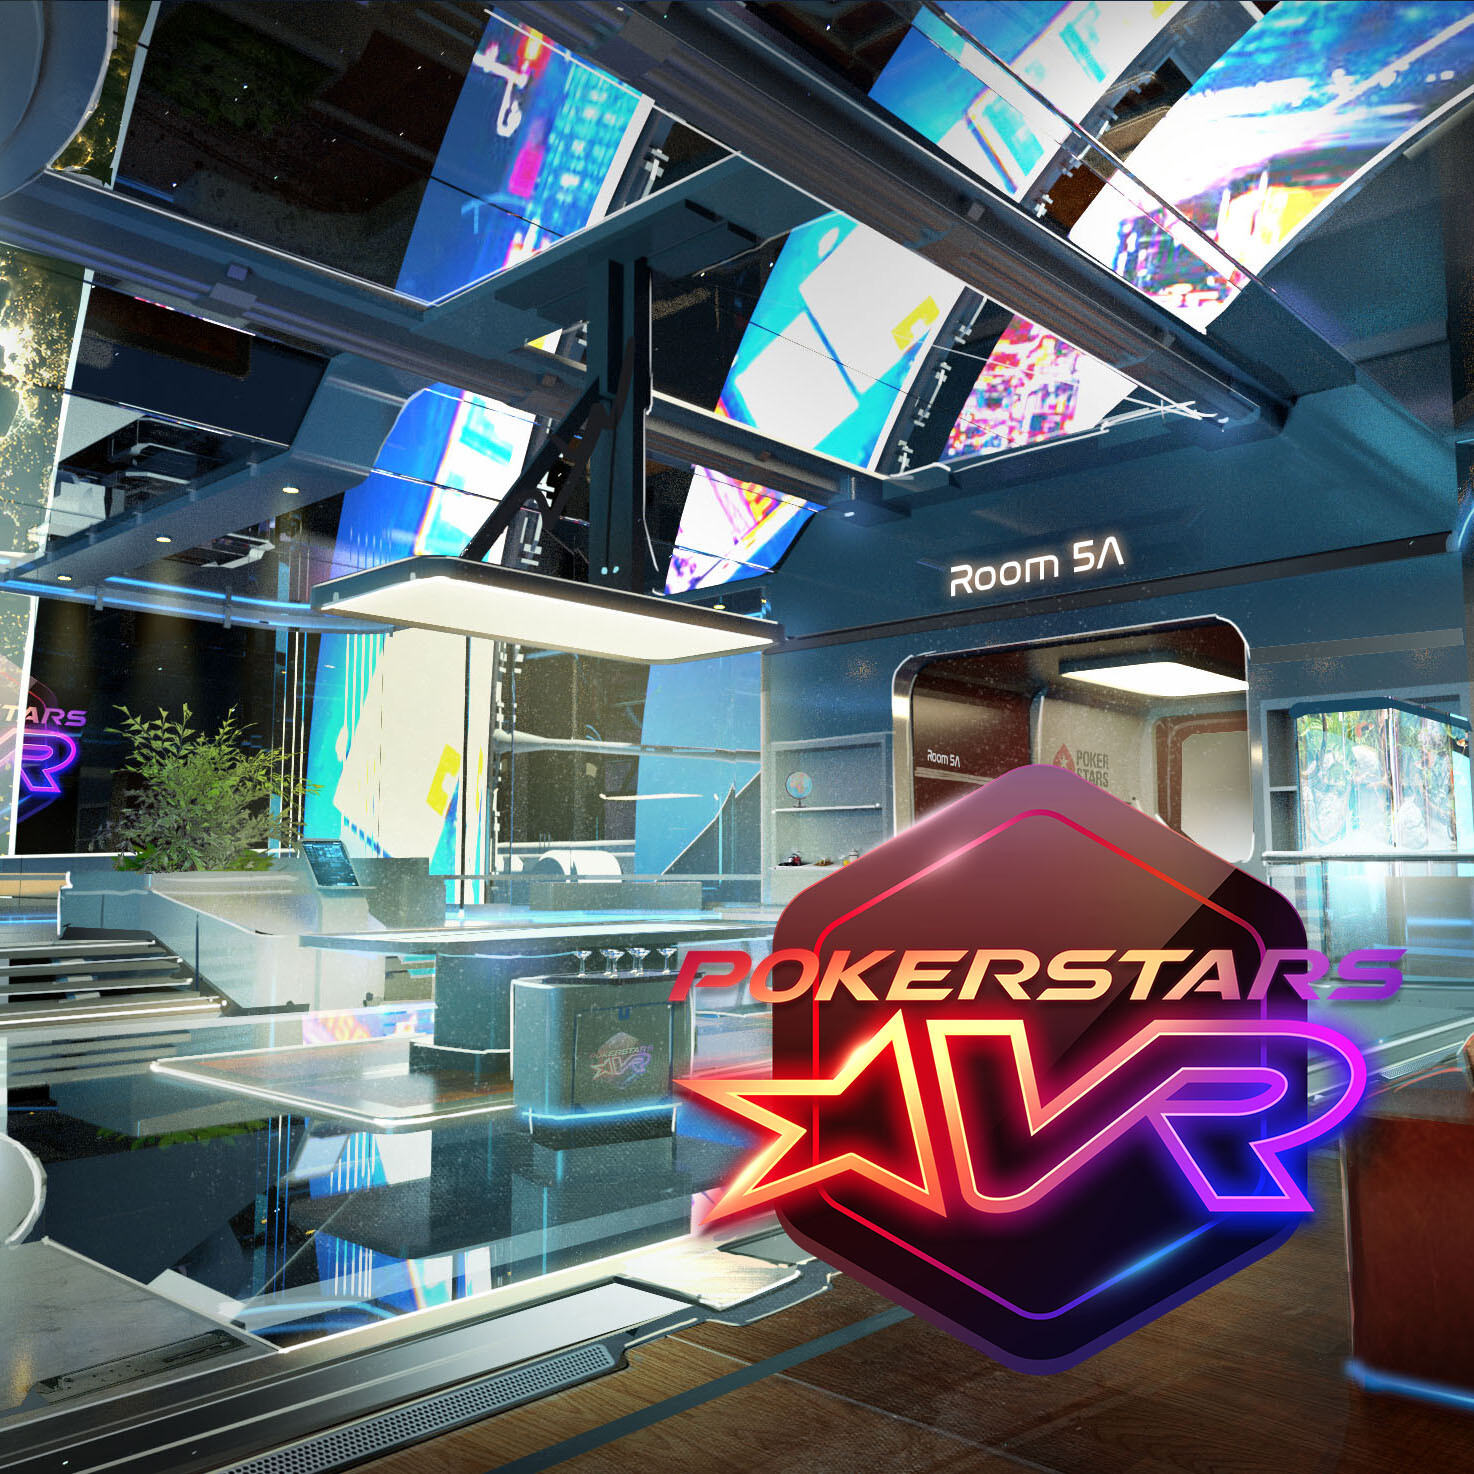 Pokerstars VR Space